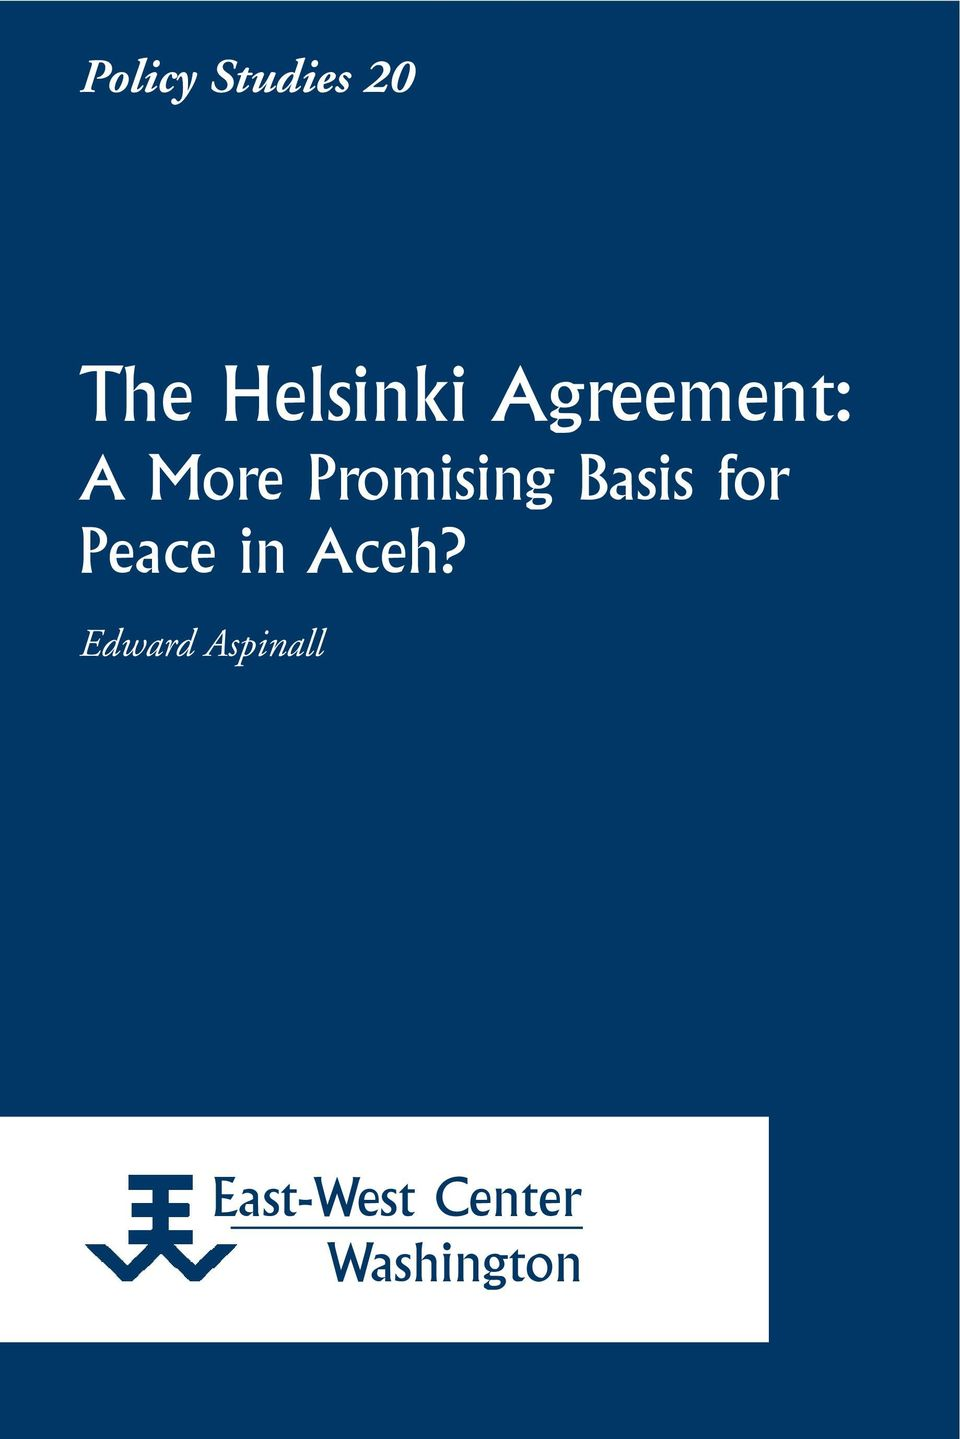 Basis for Peace in Aceh?